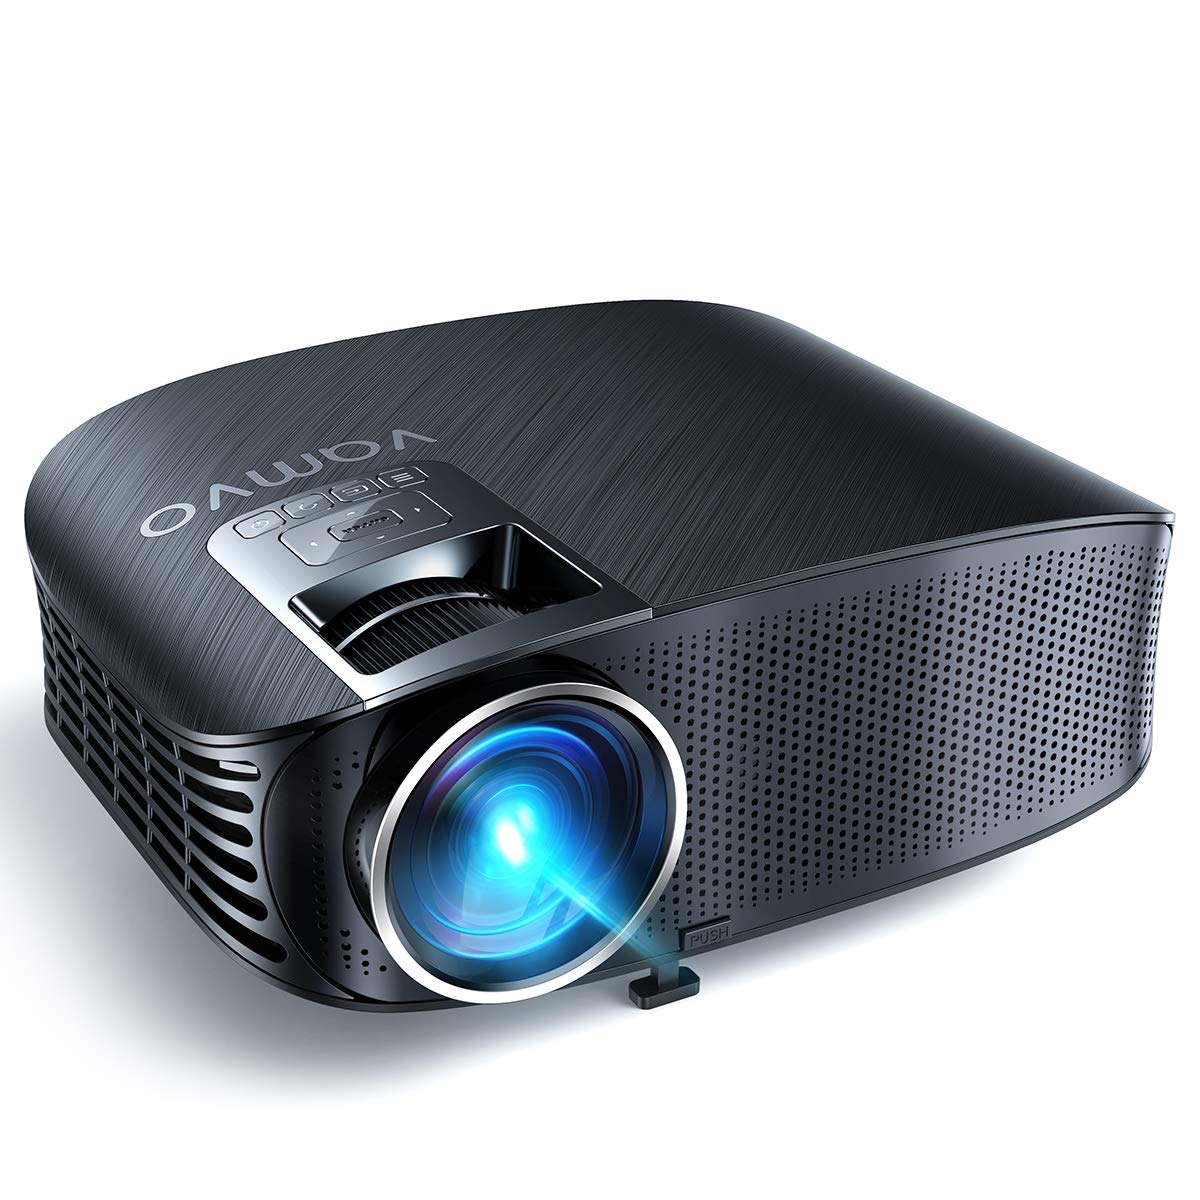 Video Projector, Outdoor Movie Projector with 200'' Projection Size, vamvo Home Theater Projector, Support 1080P, Compatible with Fire TV Stick, PS4, HDMI, VGA, AV and USB 3600S